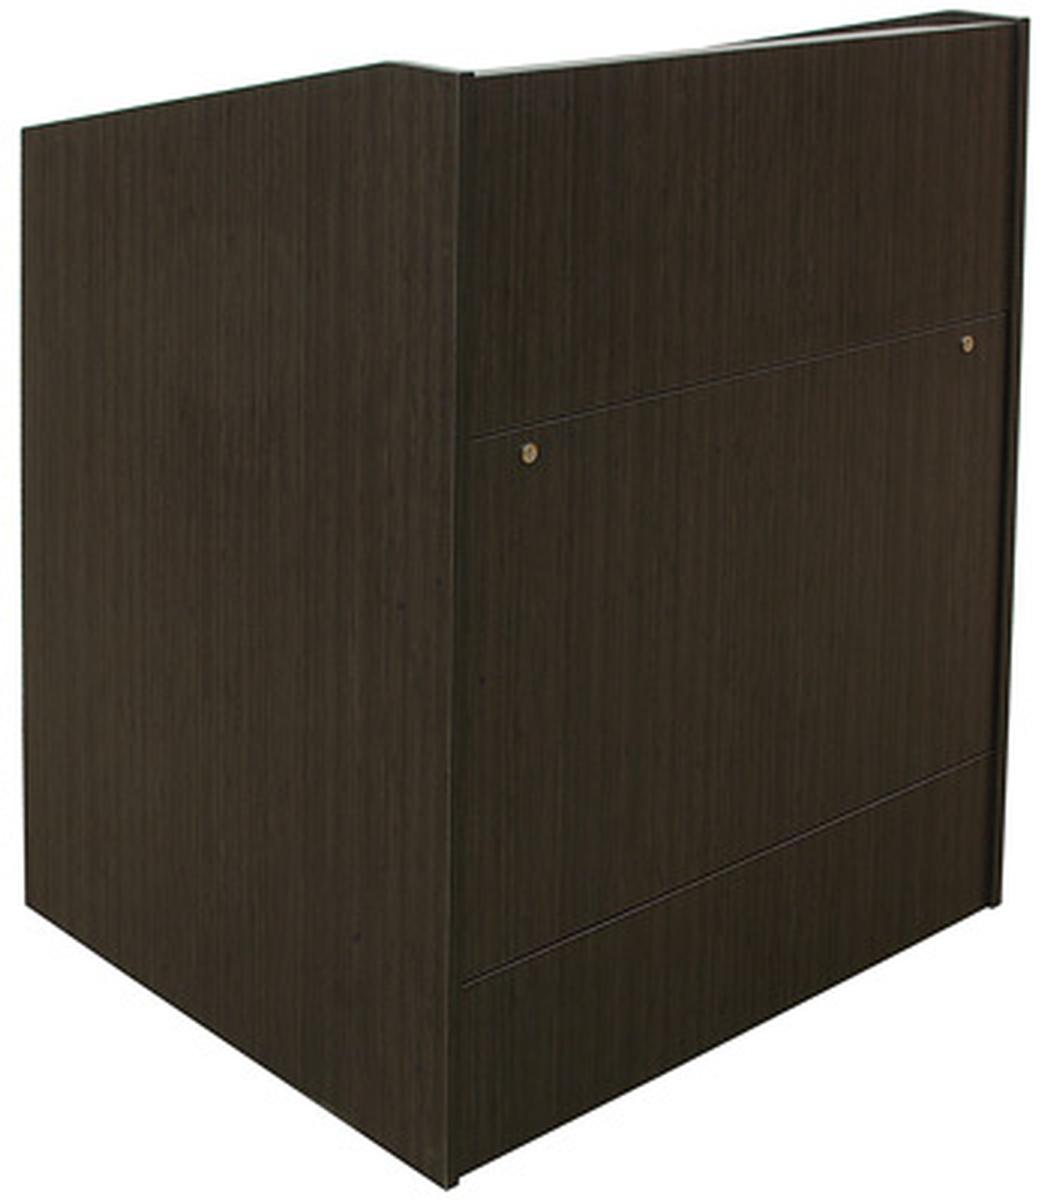 Elco 35 31250 marshall furniture quick ship lectern for Furniture 35